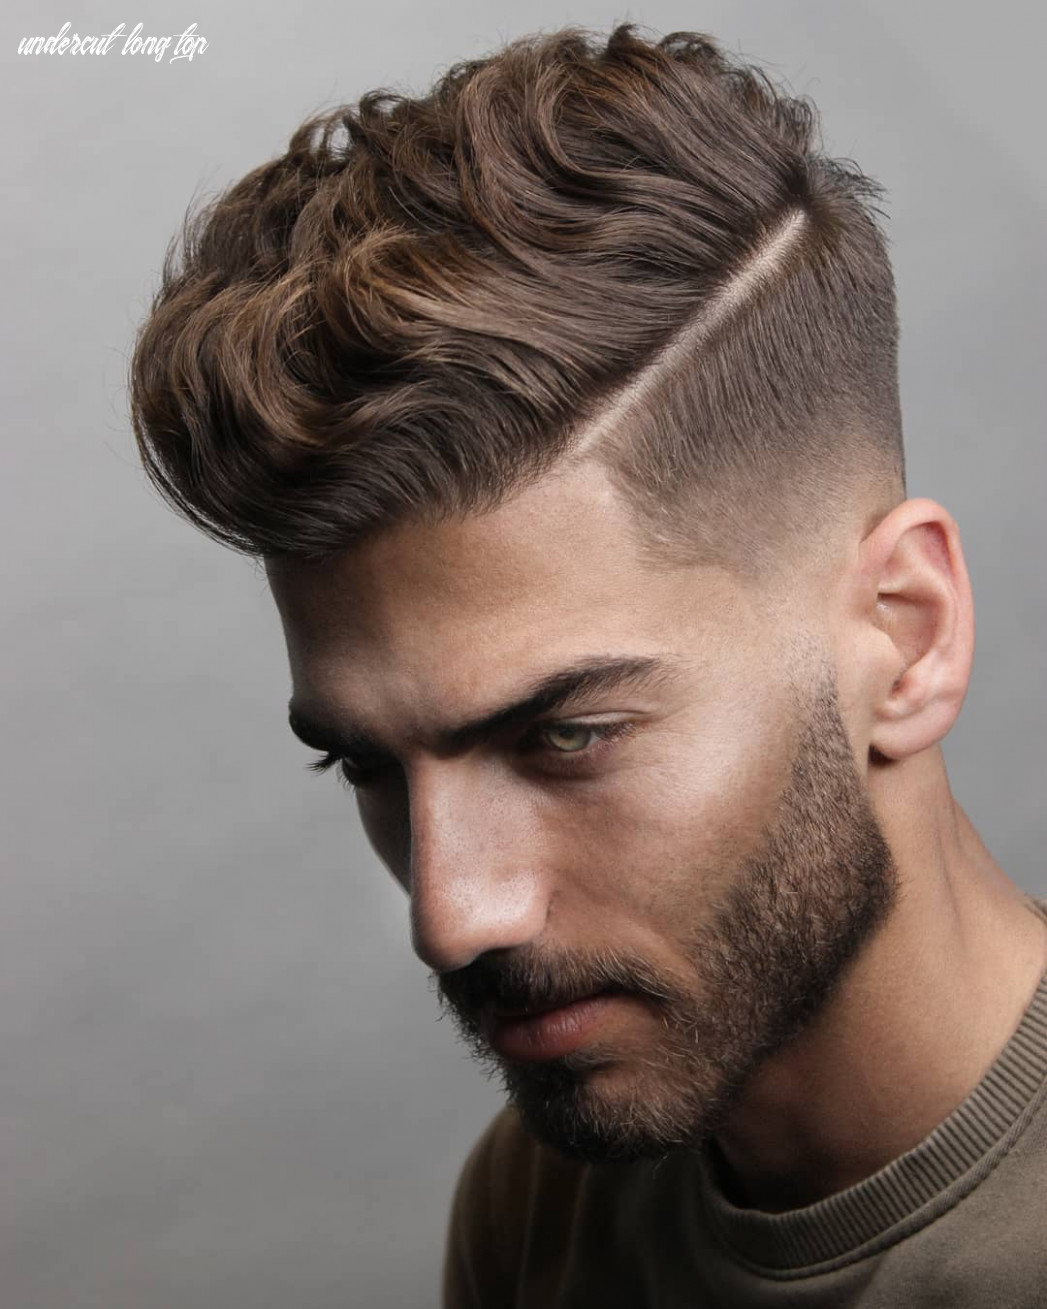 8 short on sides long on top haircuts for men | man haircuts undercut long top